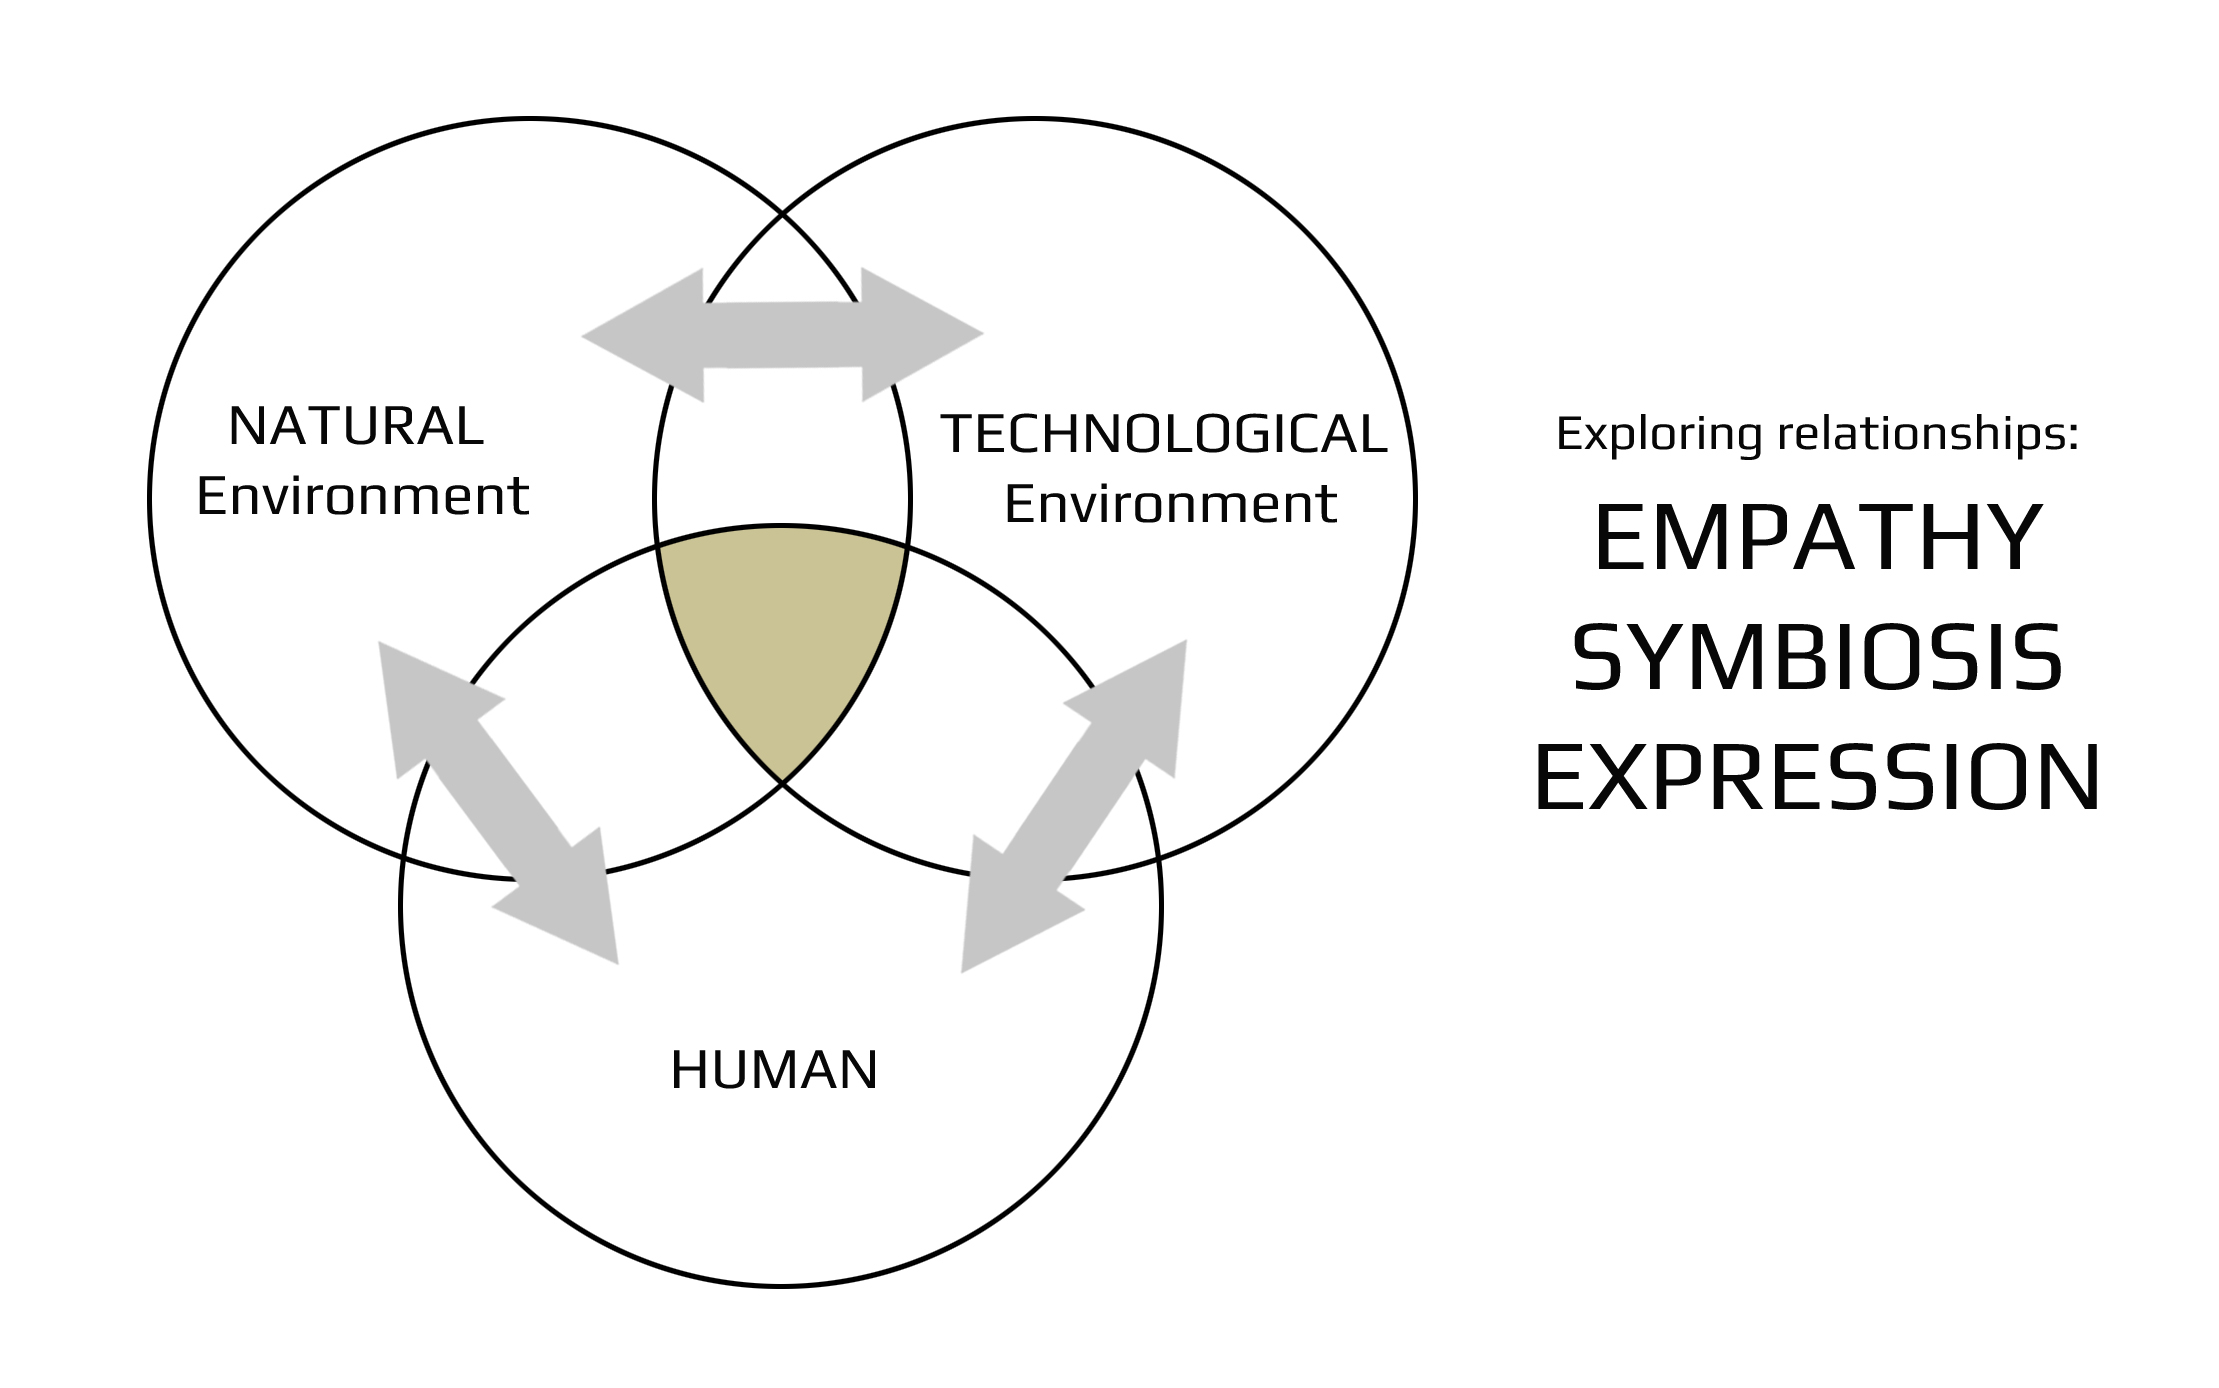 Project Update 3 Of Empathy Symbiosis Expression And